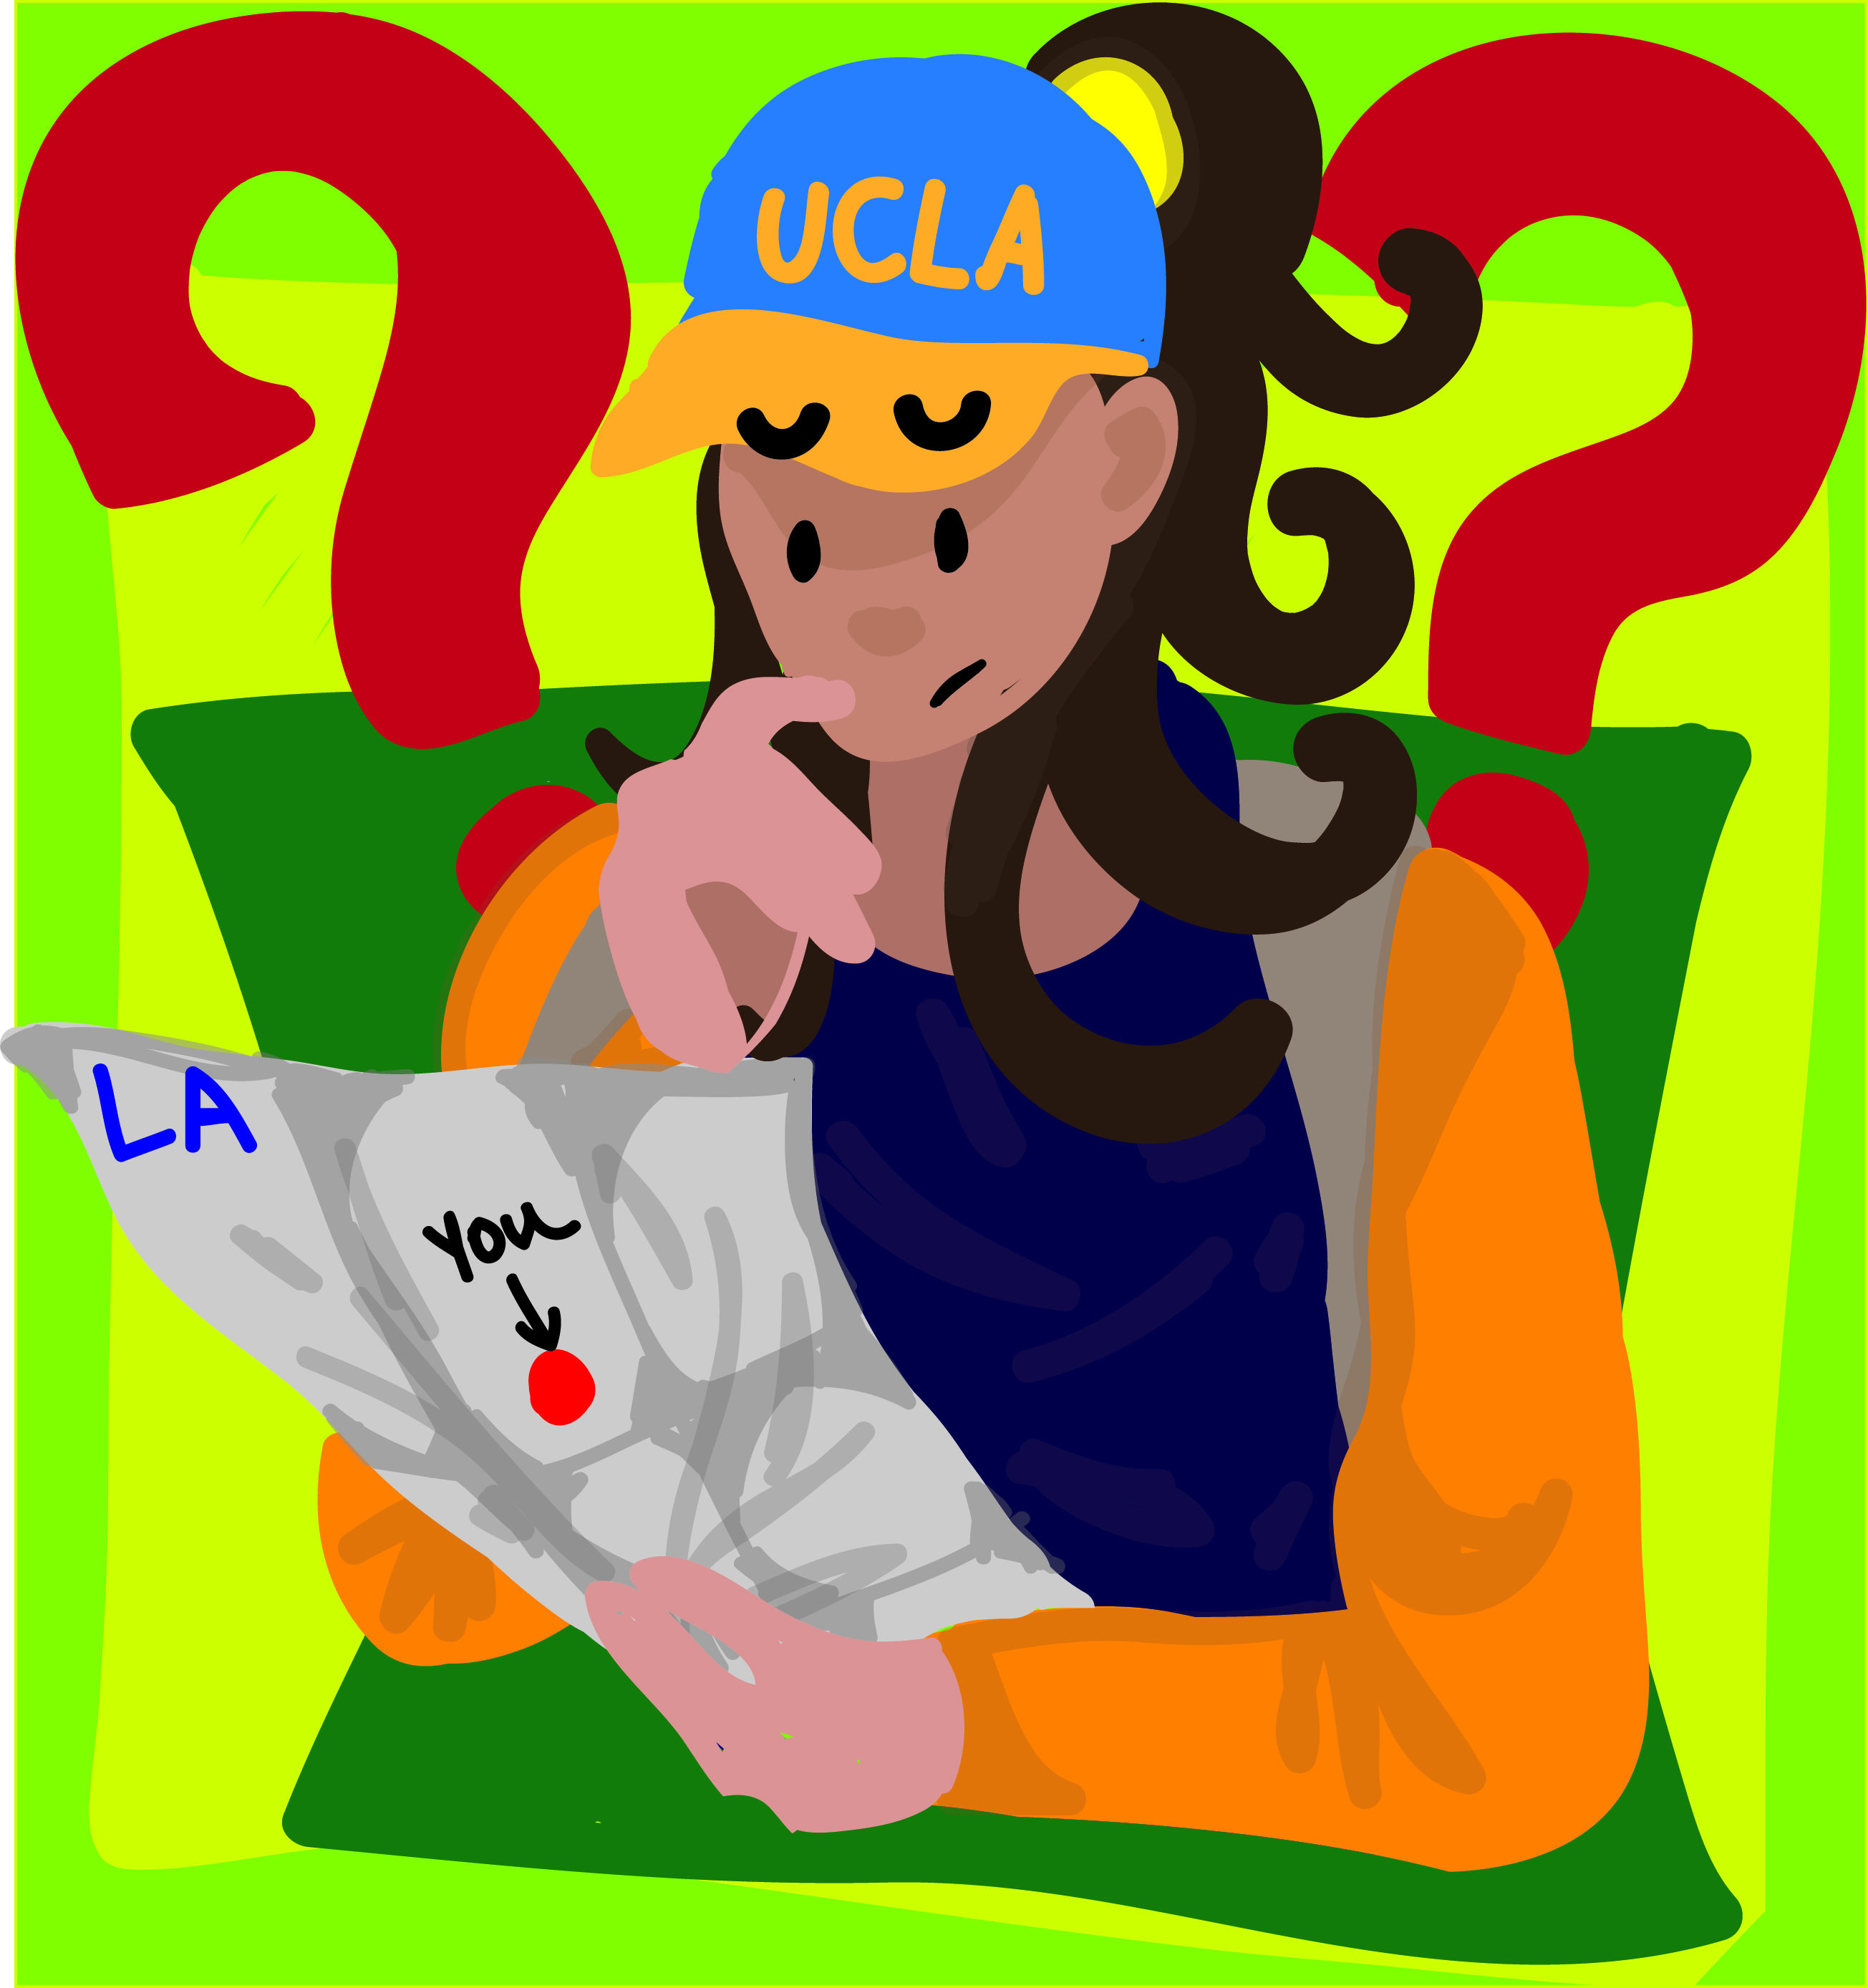 I m going to college ucla program clipart freeuse download You See L.A. Abroad: If the world\'s interesting, LA is more ... freeuse download